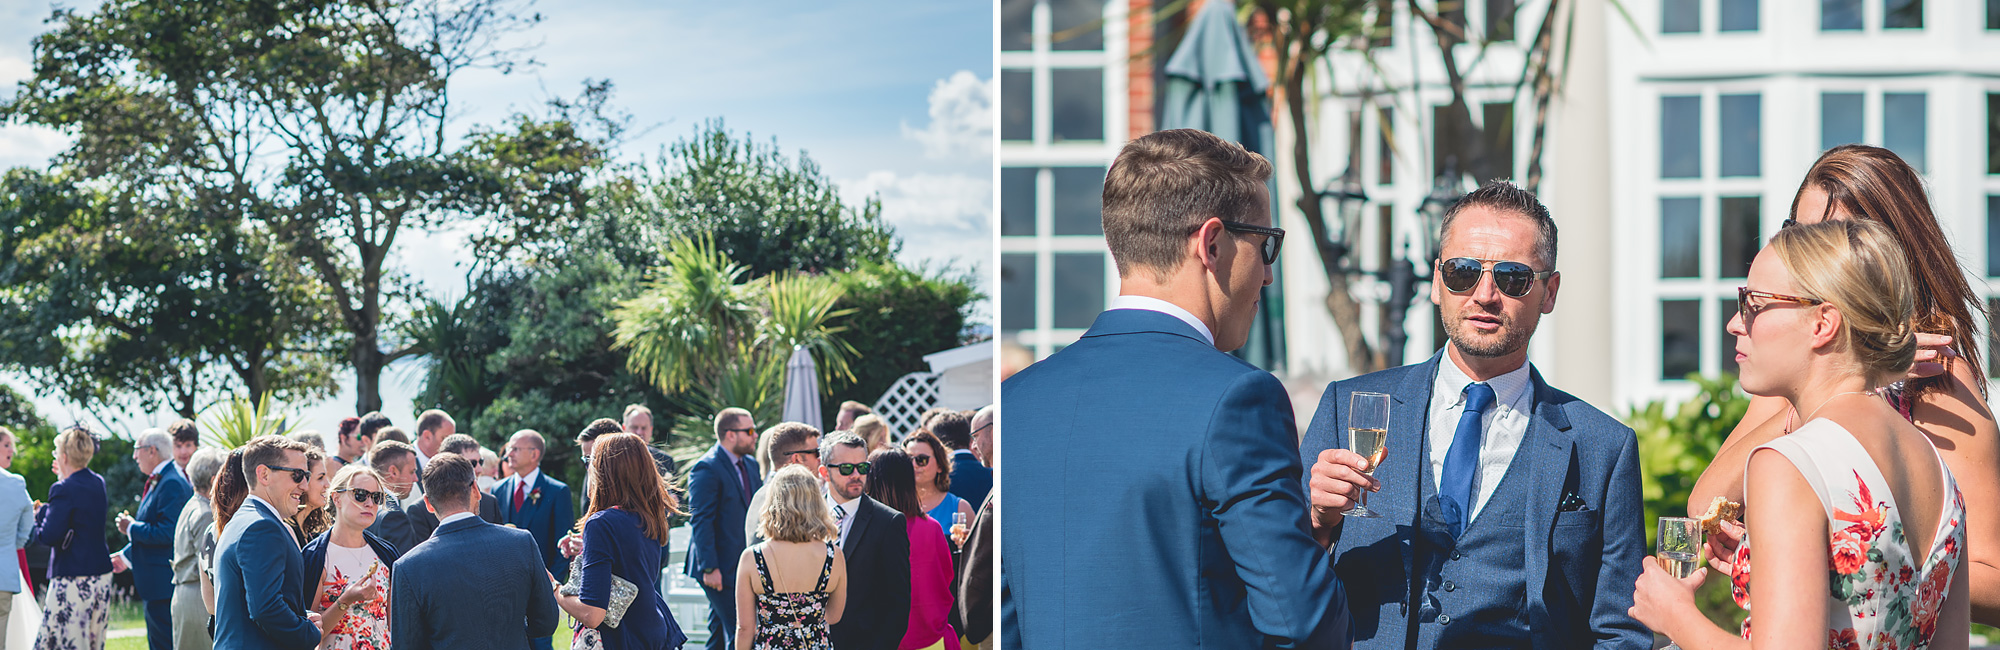 Documentary-Wedding-Photography-Miramar-Hotel-Bournemouth-3.jpg